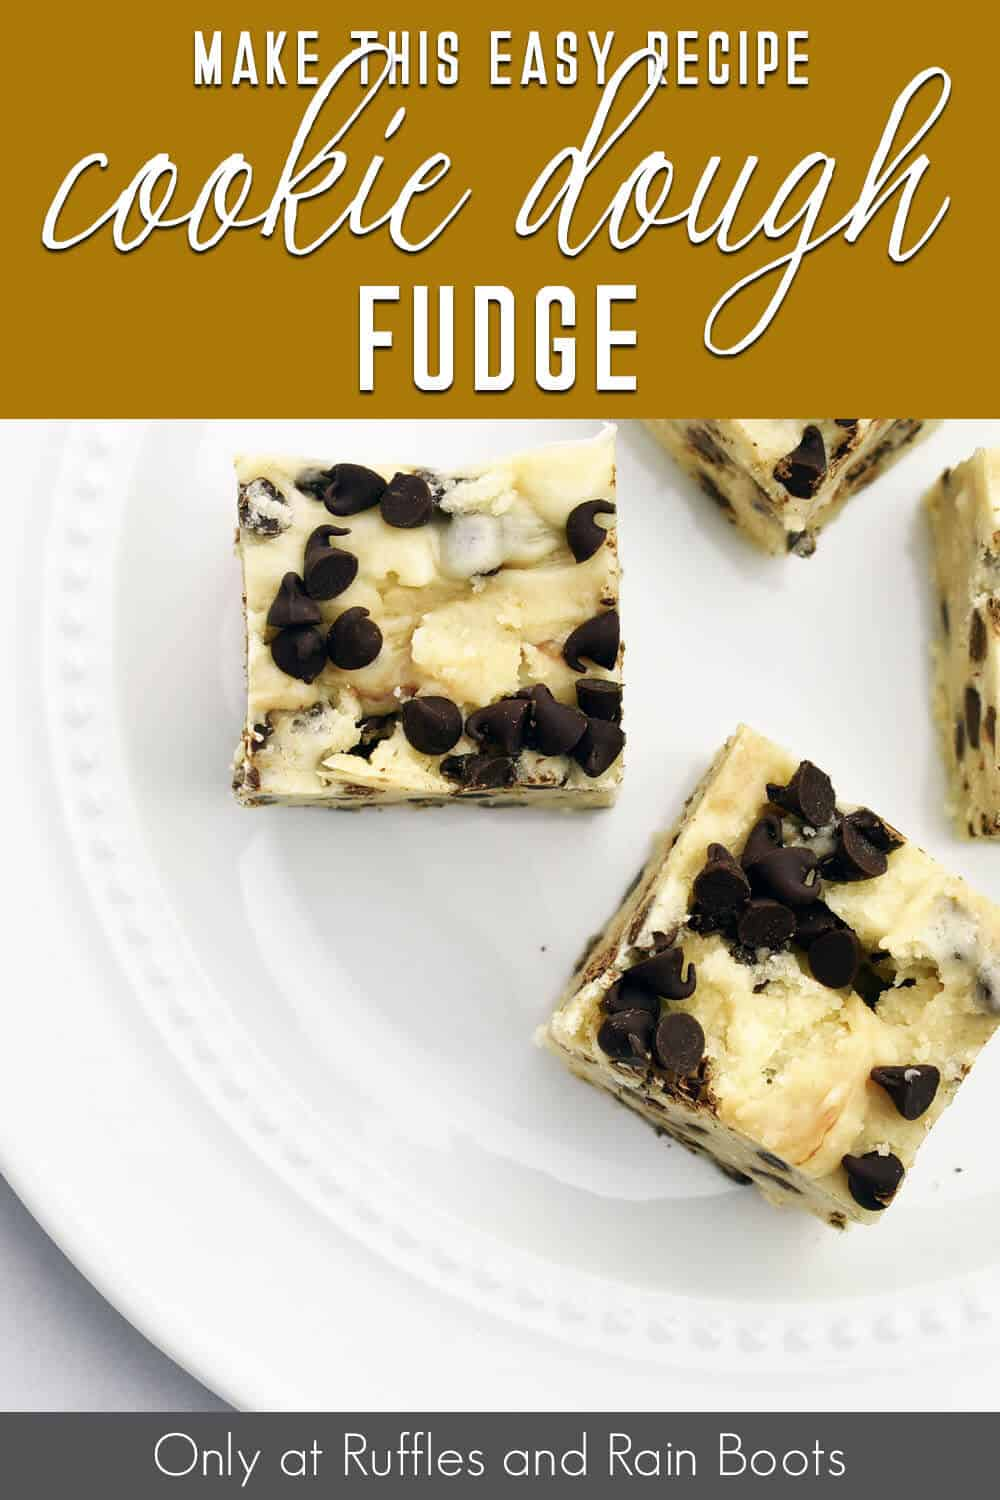 recipe to make cookie dough fudge with text which reads make this easy recipe cookie dough fudge